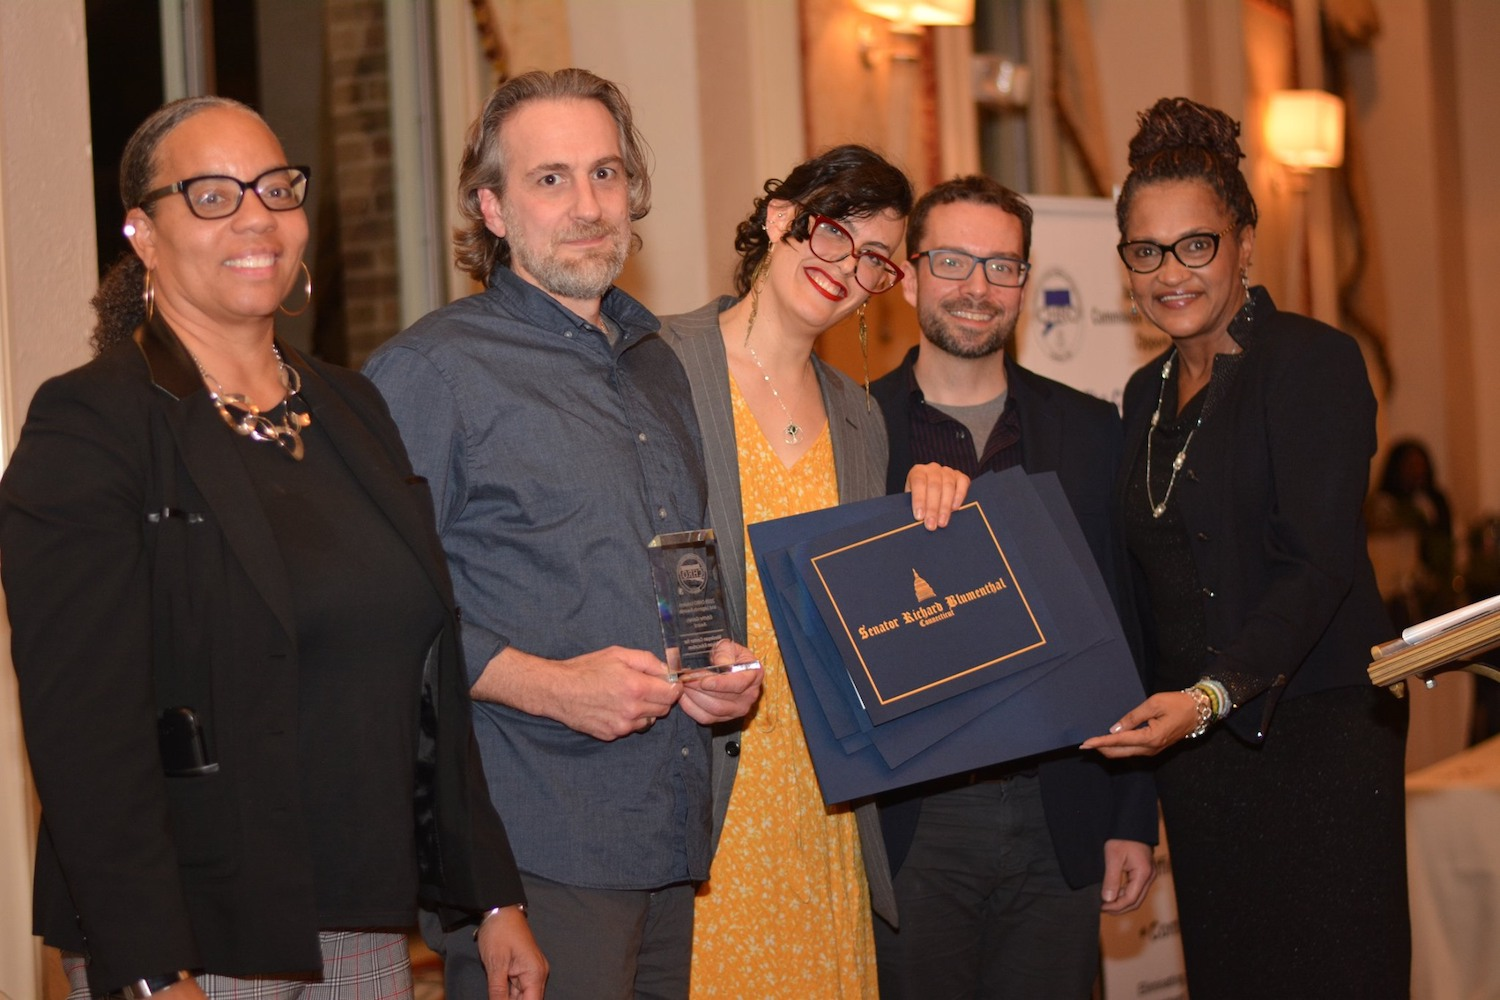 From left, Cheryl Sharp '90, deputy director of the Connecticut Commission on Human Rights and Opportunities (CHRO); Jason Torello, Center for Prison Education alumnus; Allie Cislo, CPE program manager; Daniel McGloin, CPE academic development and planning manager; and Tanya Hughes, CHRO executive director at the 2019 Leaders and Legends award ceremony on Nov. 21.